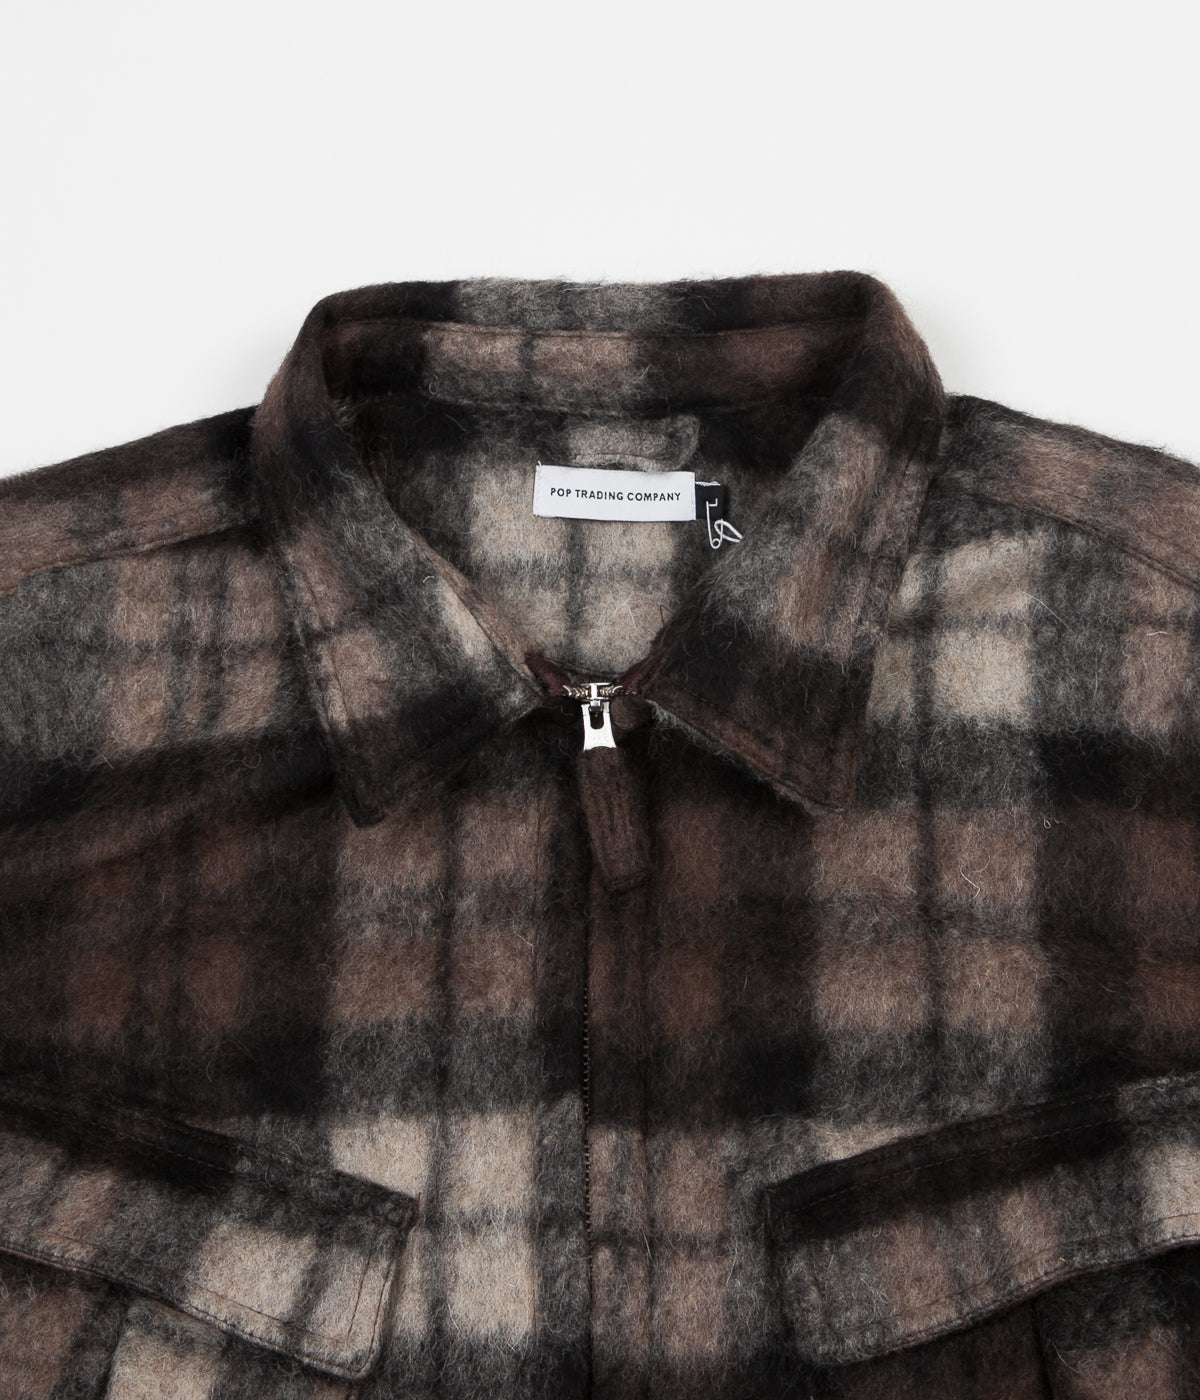 Pop Trading Company Falling Down Overshirt - Black / White / Brown